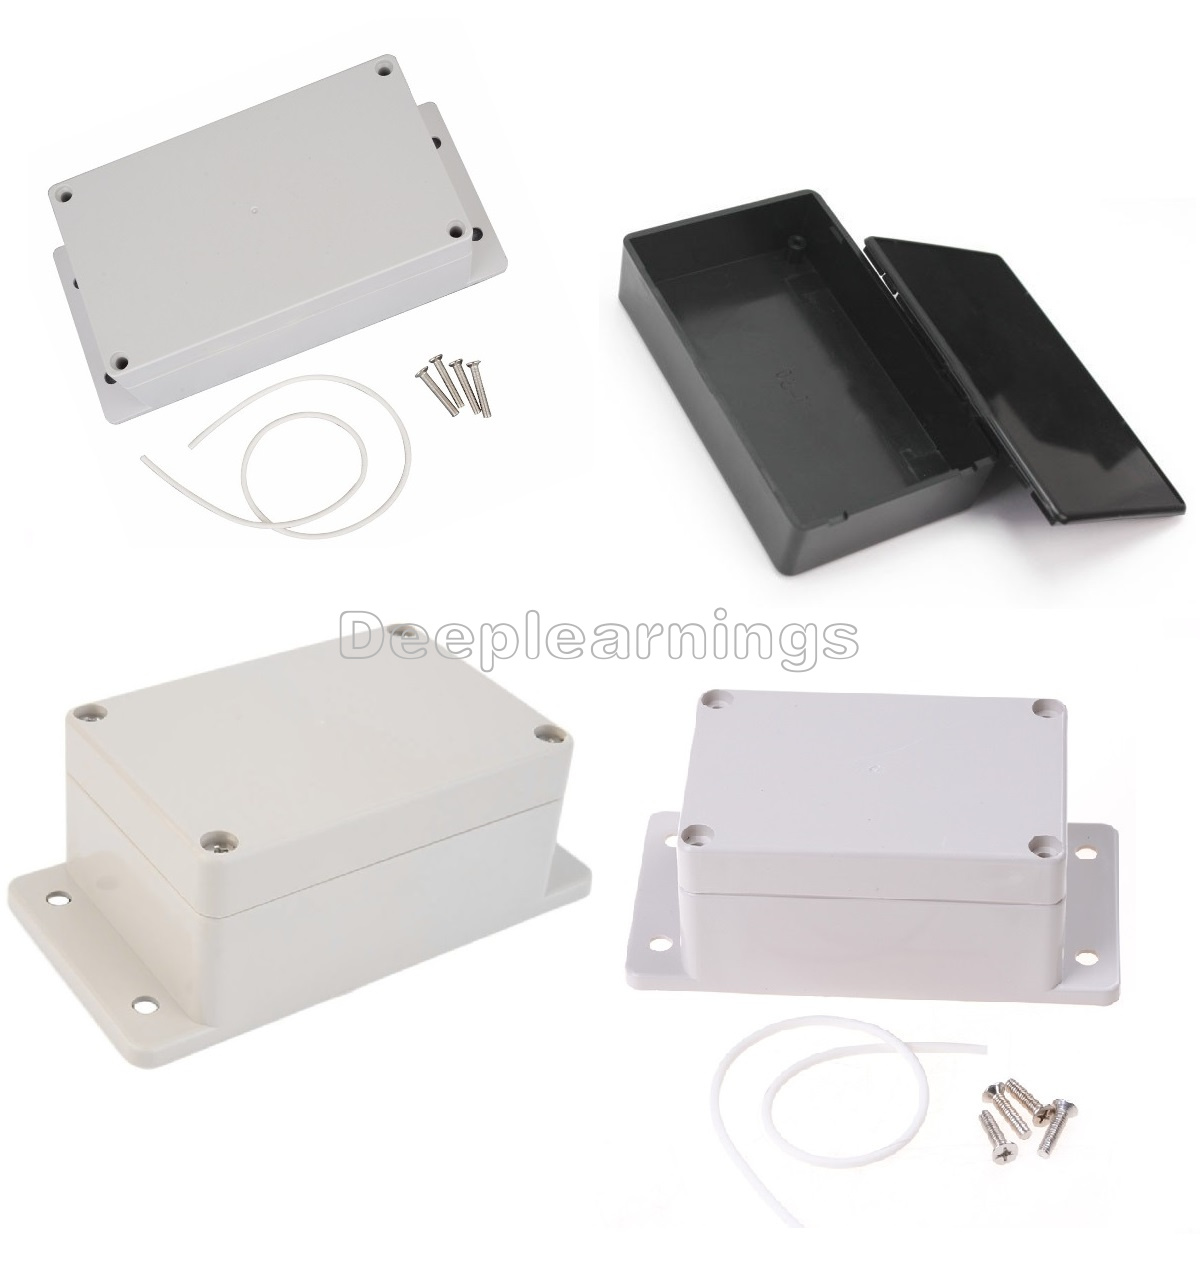 Waterproof Plastic Electronic Instrument Project Enclosure New Projects In Electronics Built Hole Hold Circuit Board Non Corrosive Anti Static Insulation Resistance Damp Proof Good For